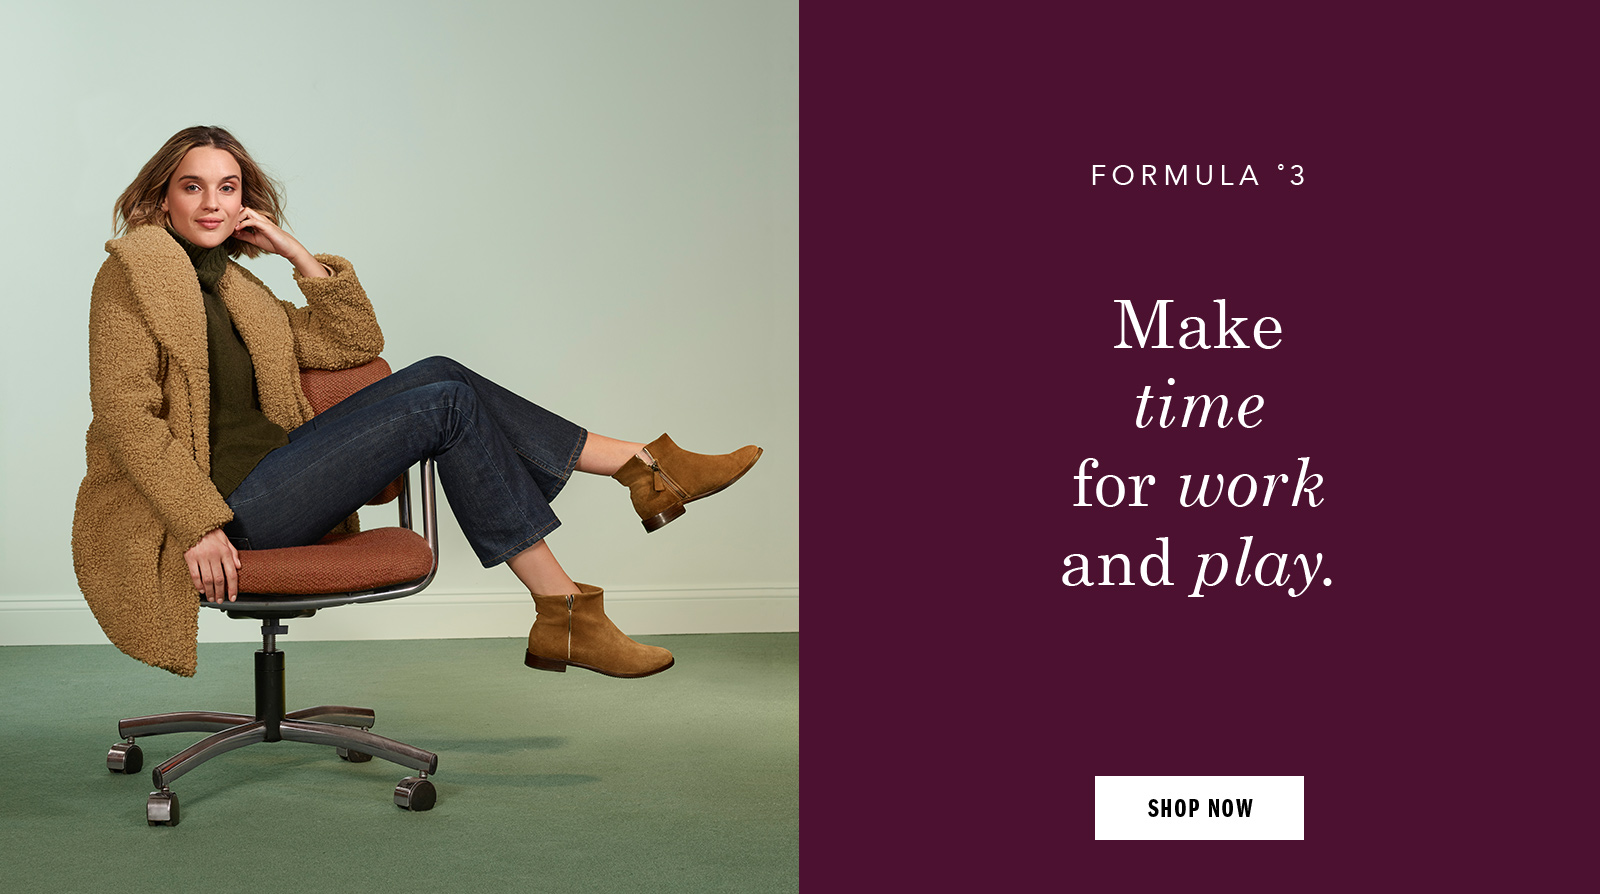 Make time for work and play - Shop Women's Shoes and Apparel